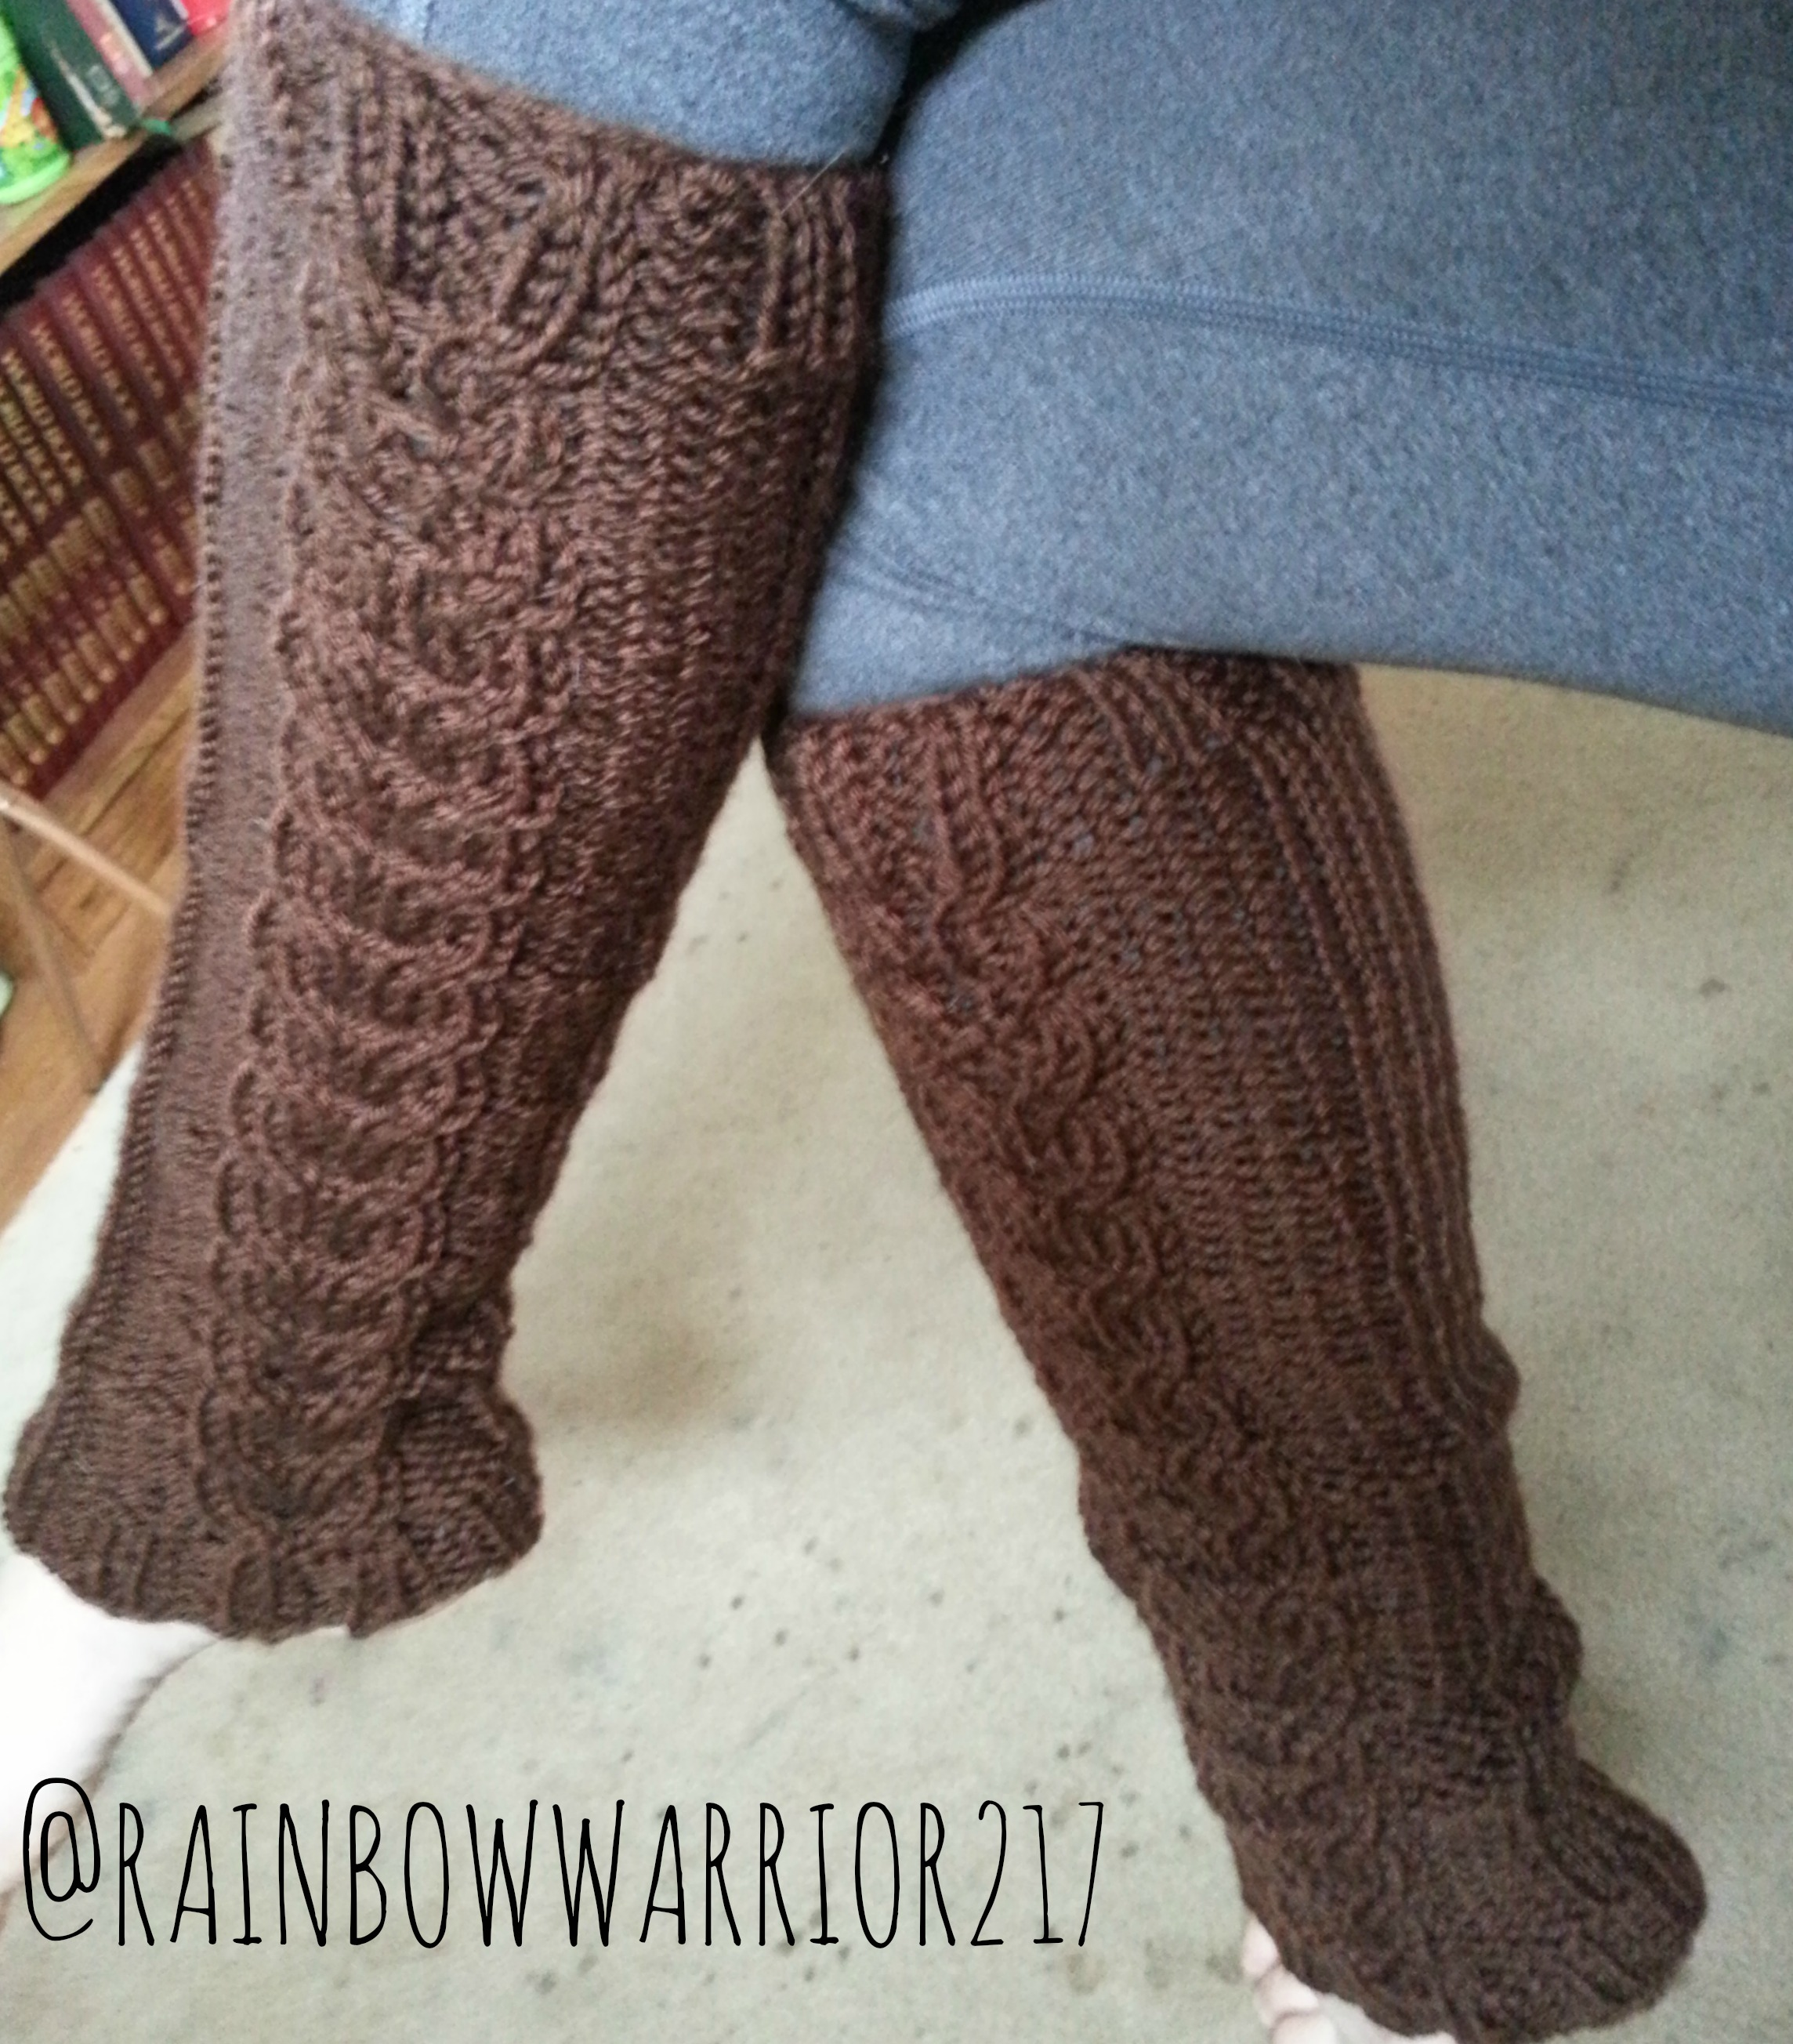 Knit Leg Warmers Cable Pattern :  Cozy  Cable Leg Warmers Knit Pattern   Rainbow Warrior